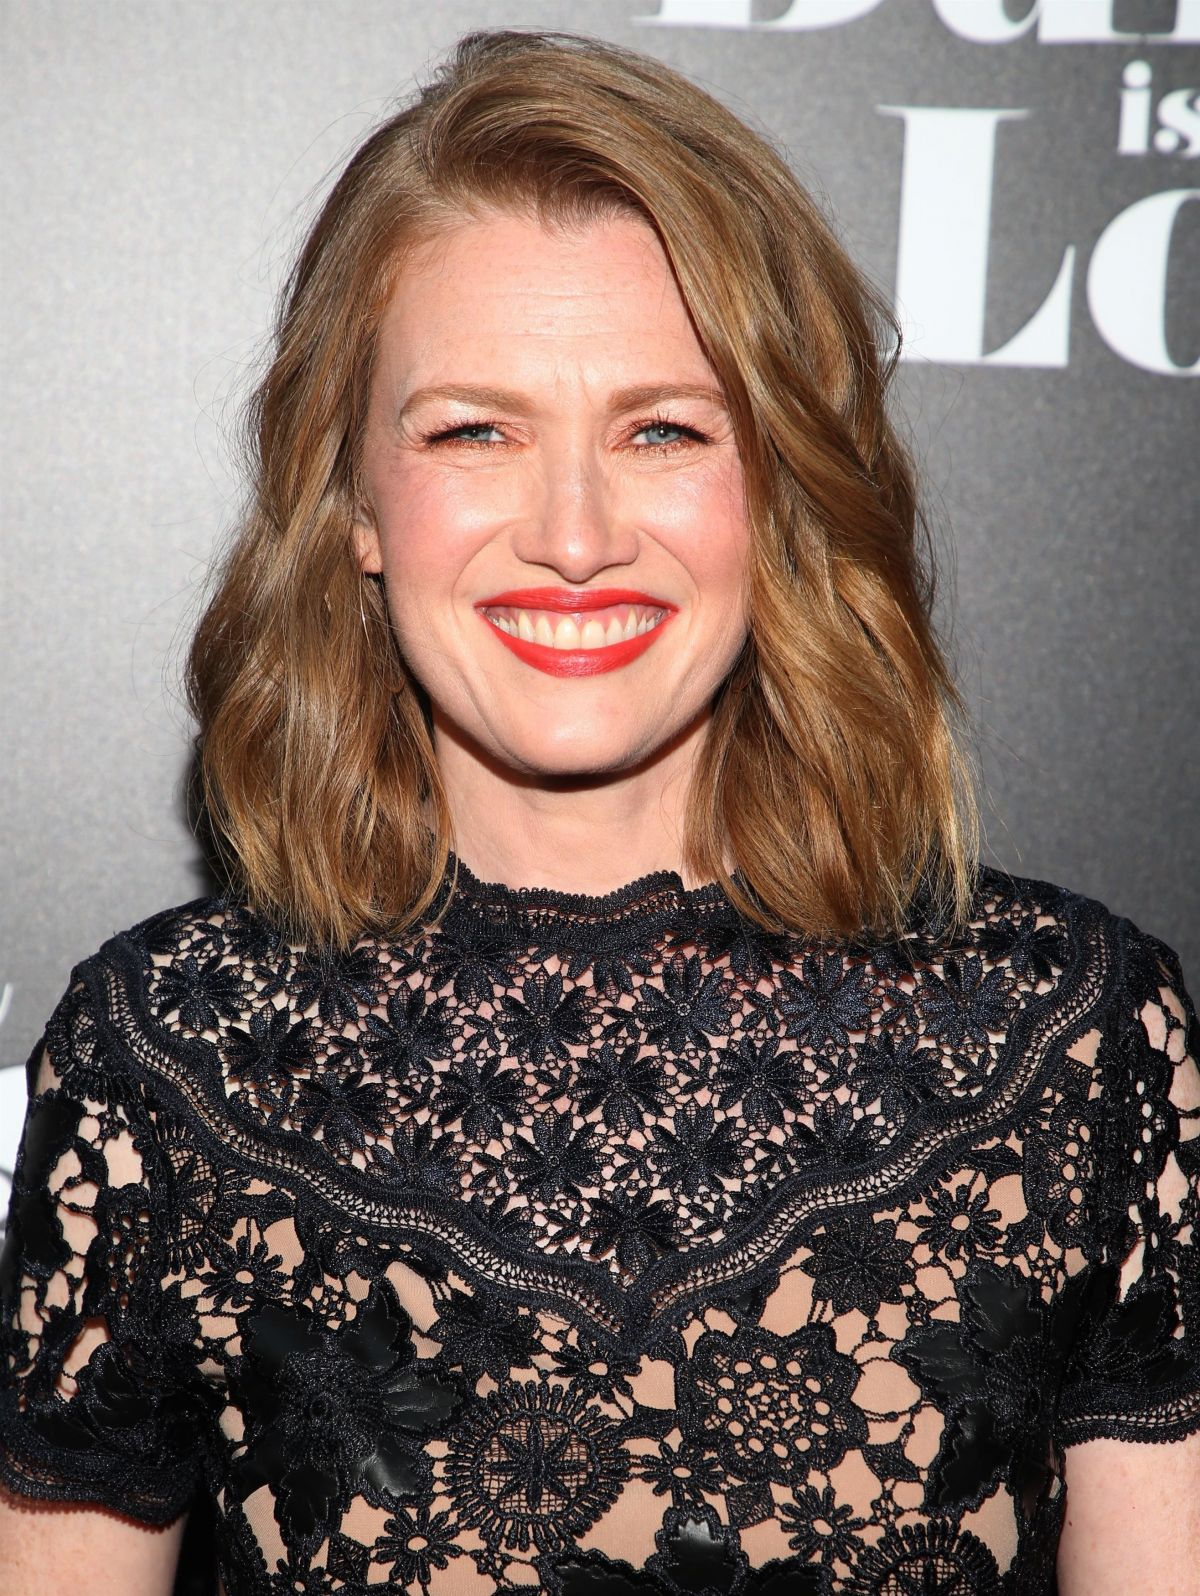 49 Hot Pictures Of Mireille Enos Which Will Get You All